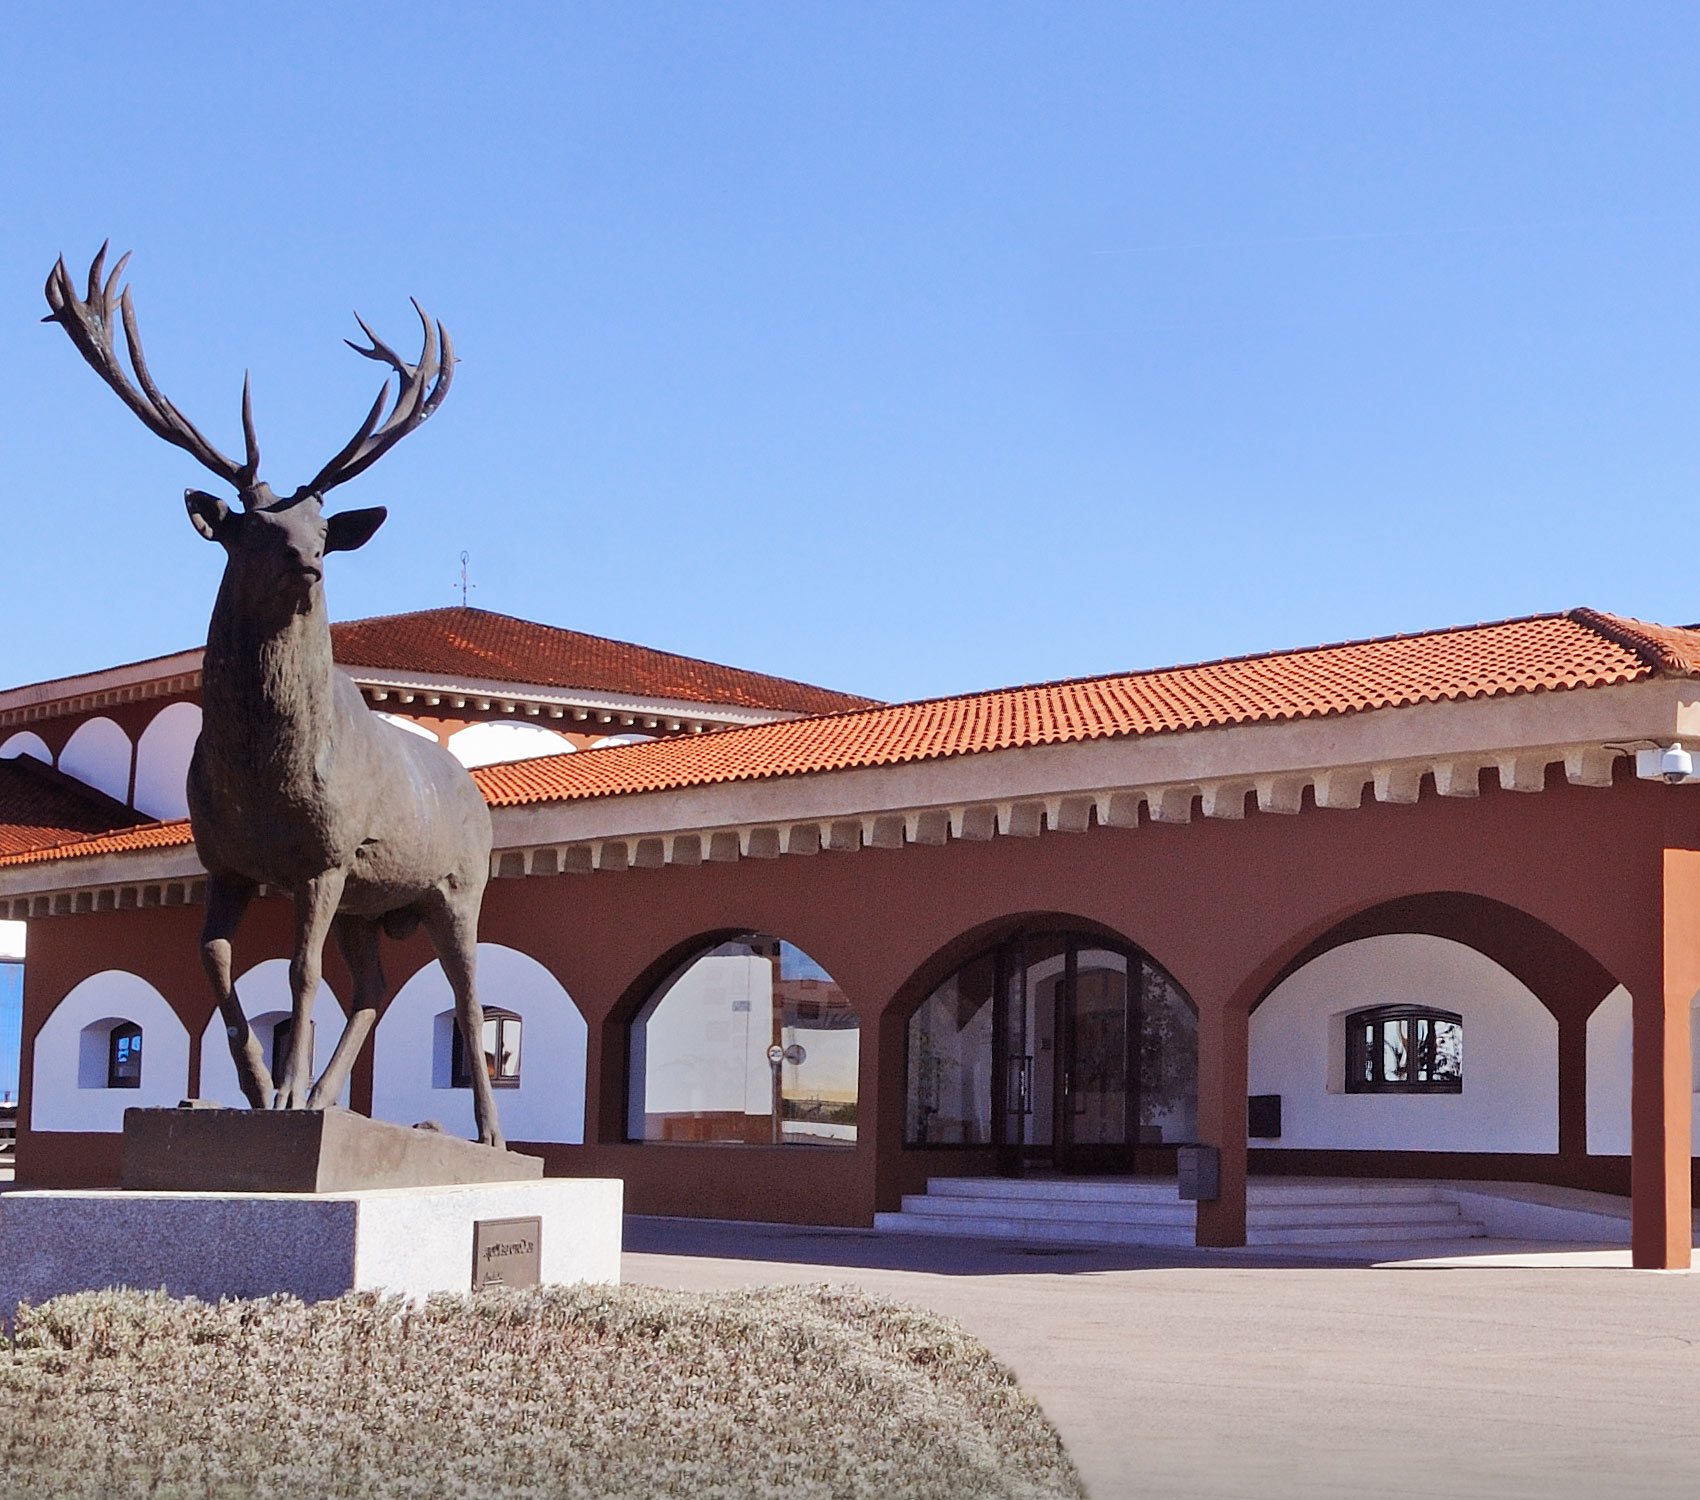 Entrance and El Coto de Rioja stag